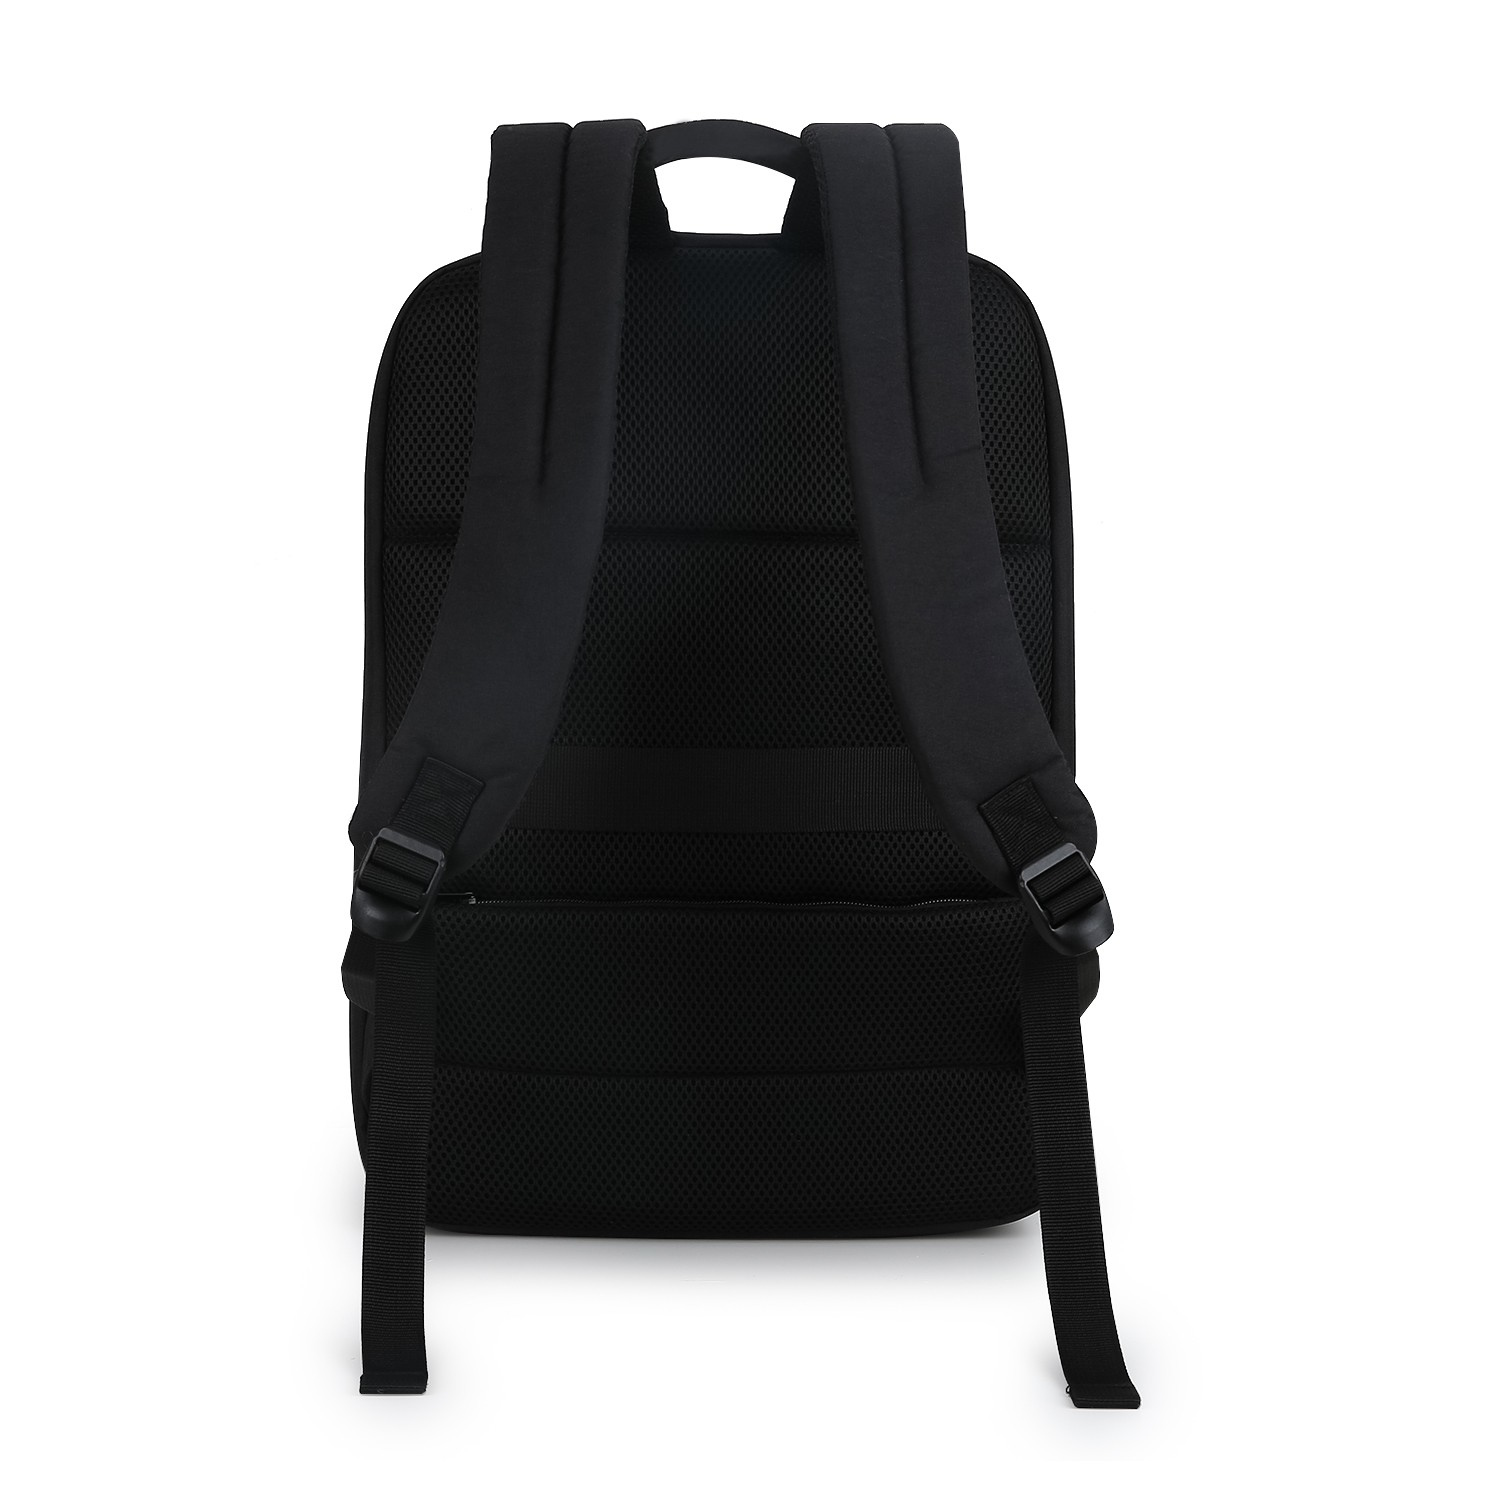 Backpack Laptop Bags Manufacturers, Backpack Laptop Bags Factory, Supply Backpack Laptop Bags